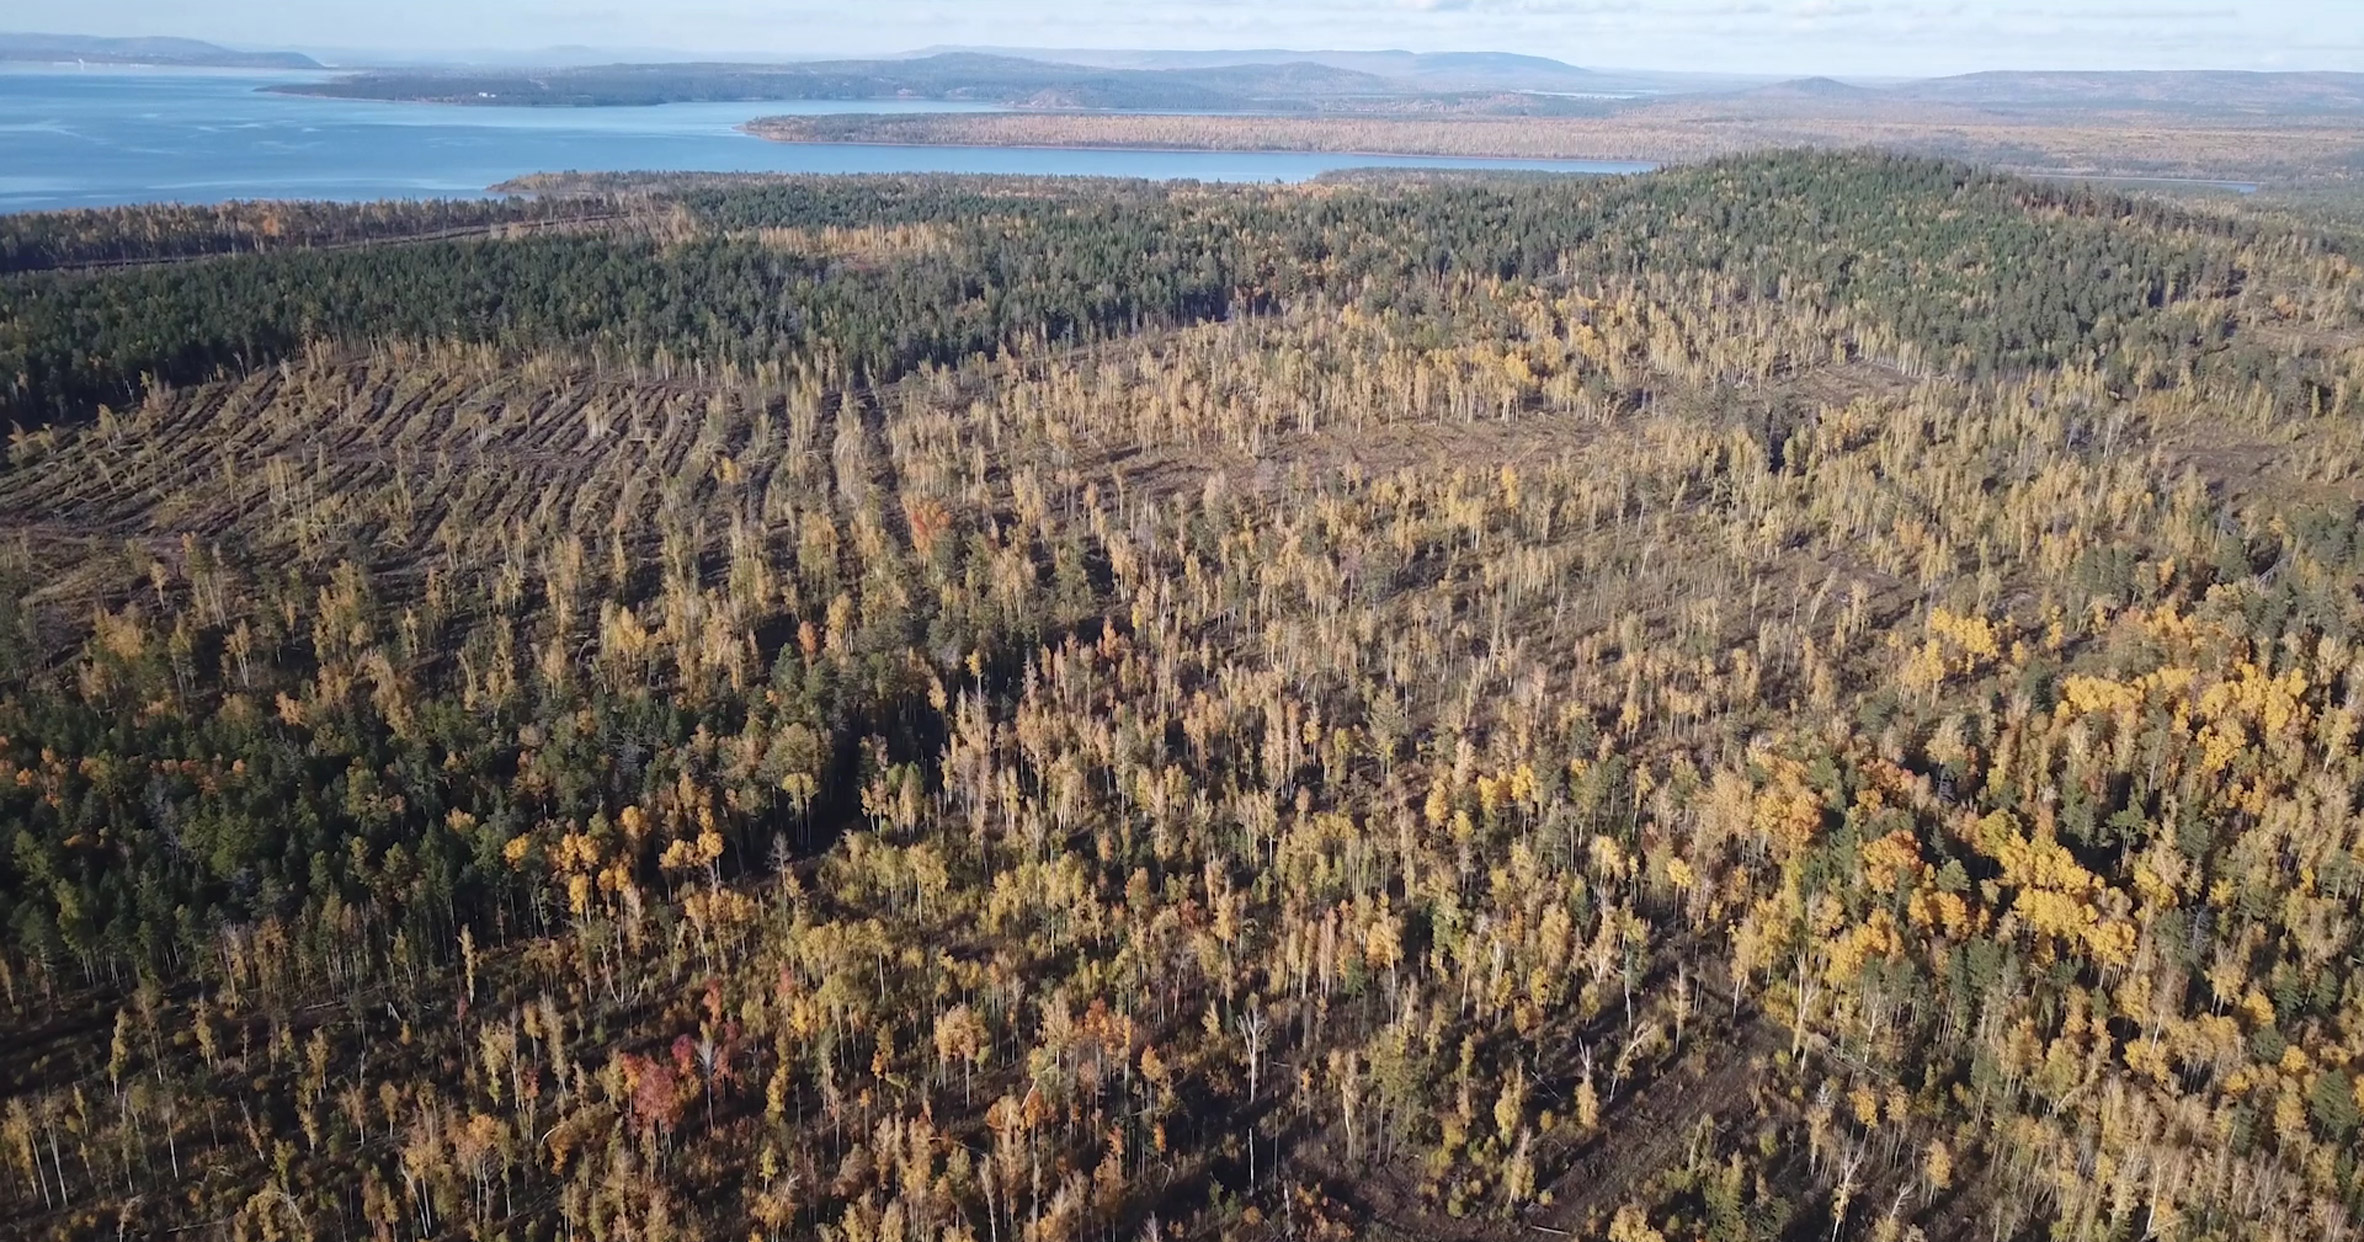 Aerial view of a Siberian forest